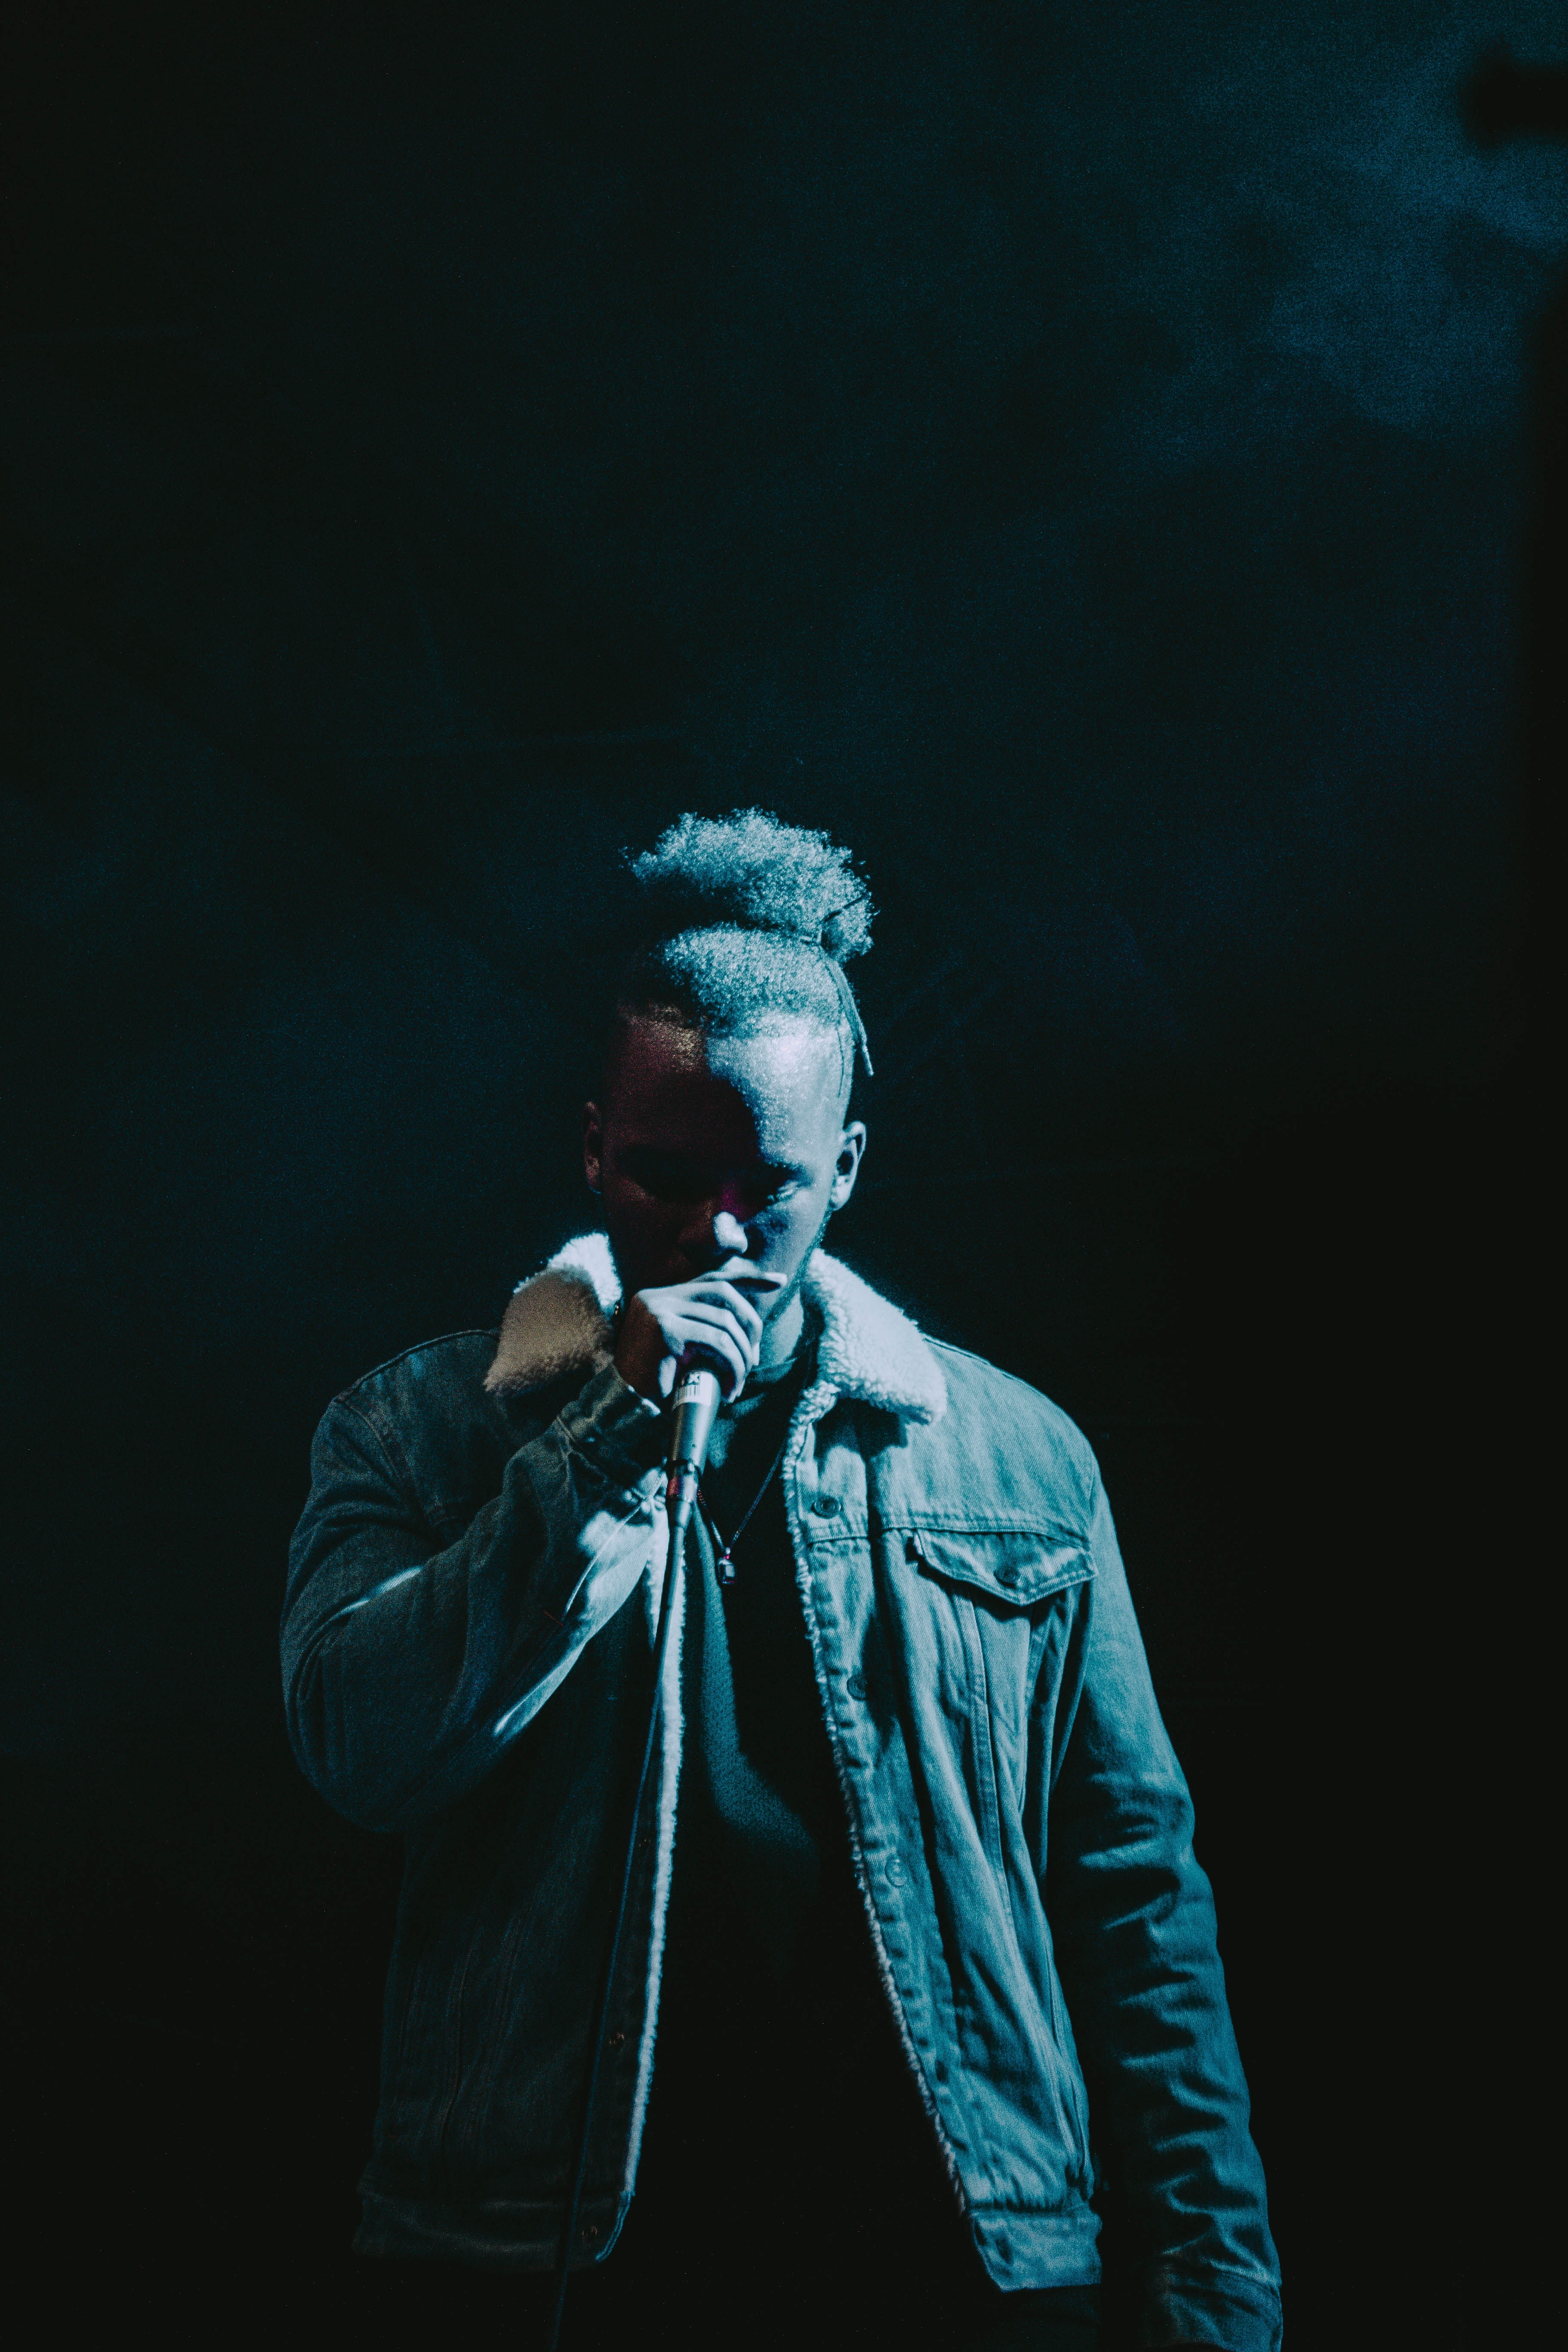 Image of a man wearing a denim jacket on stage.